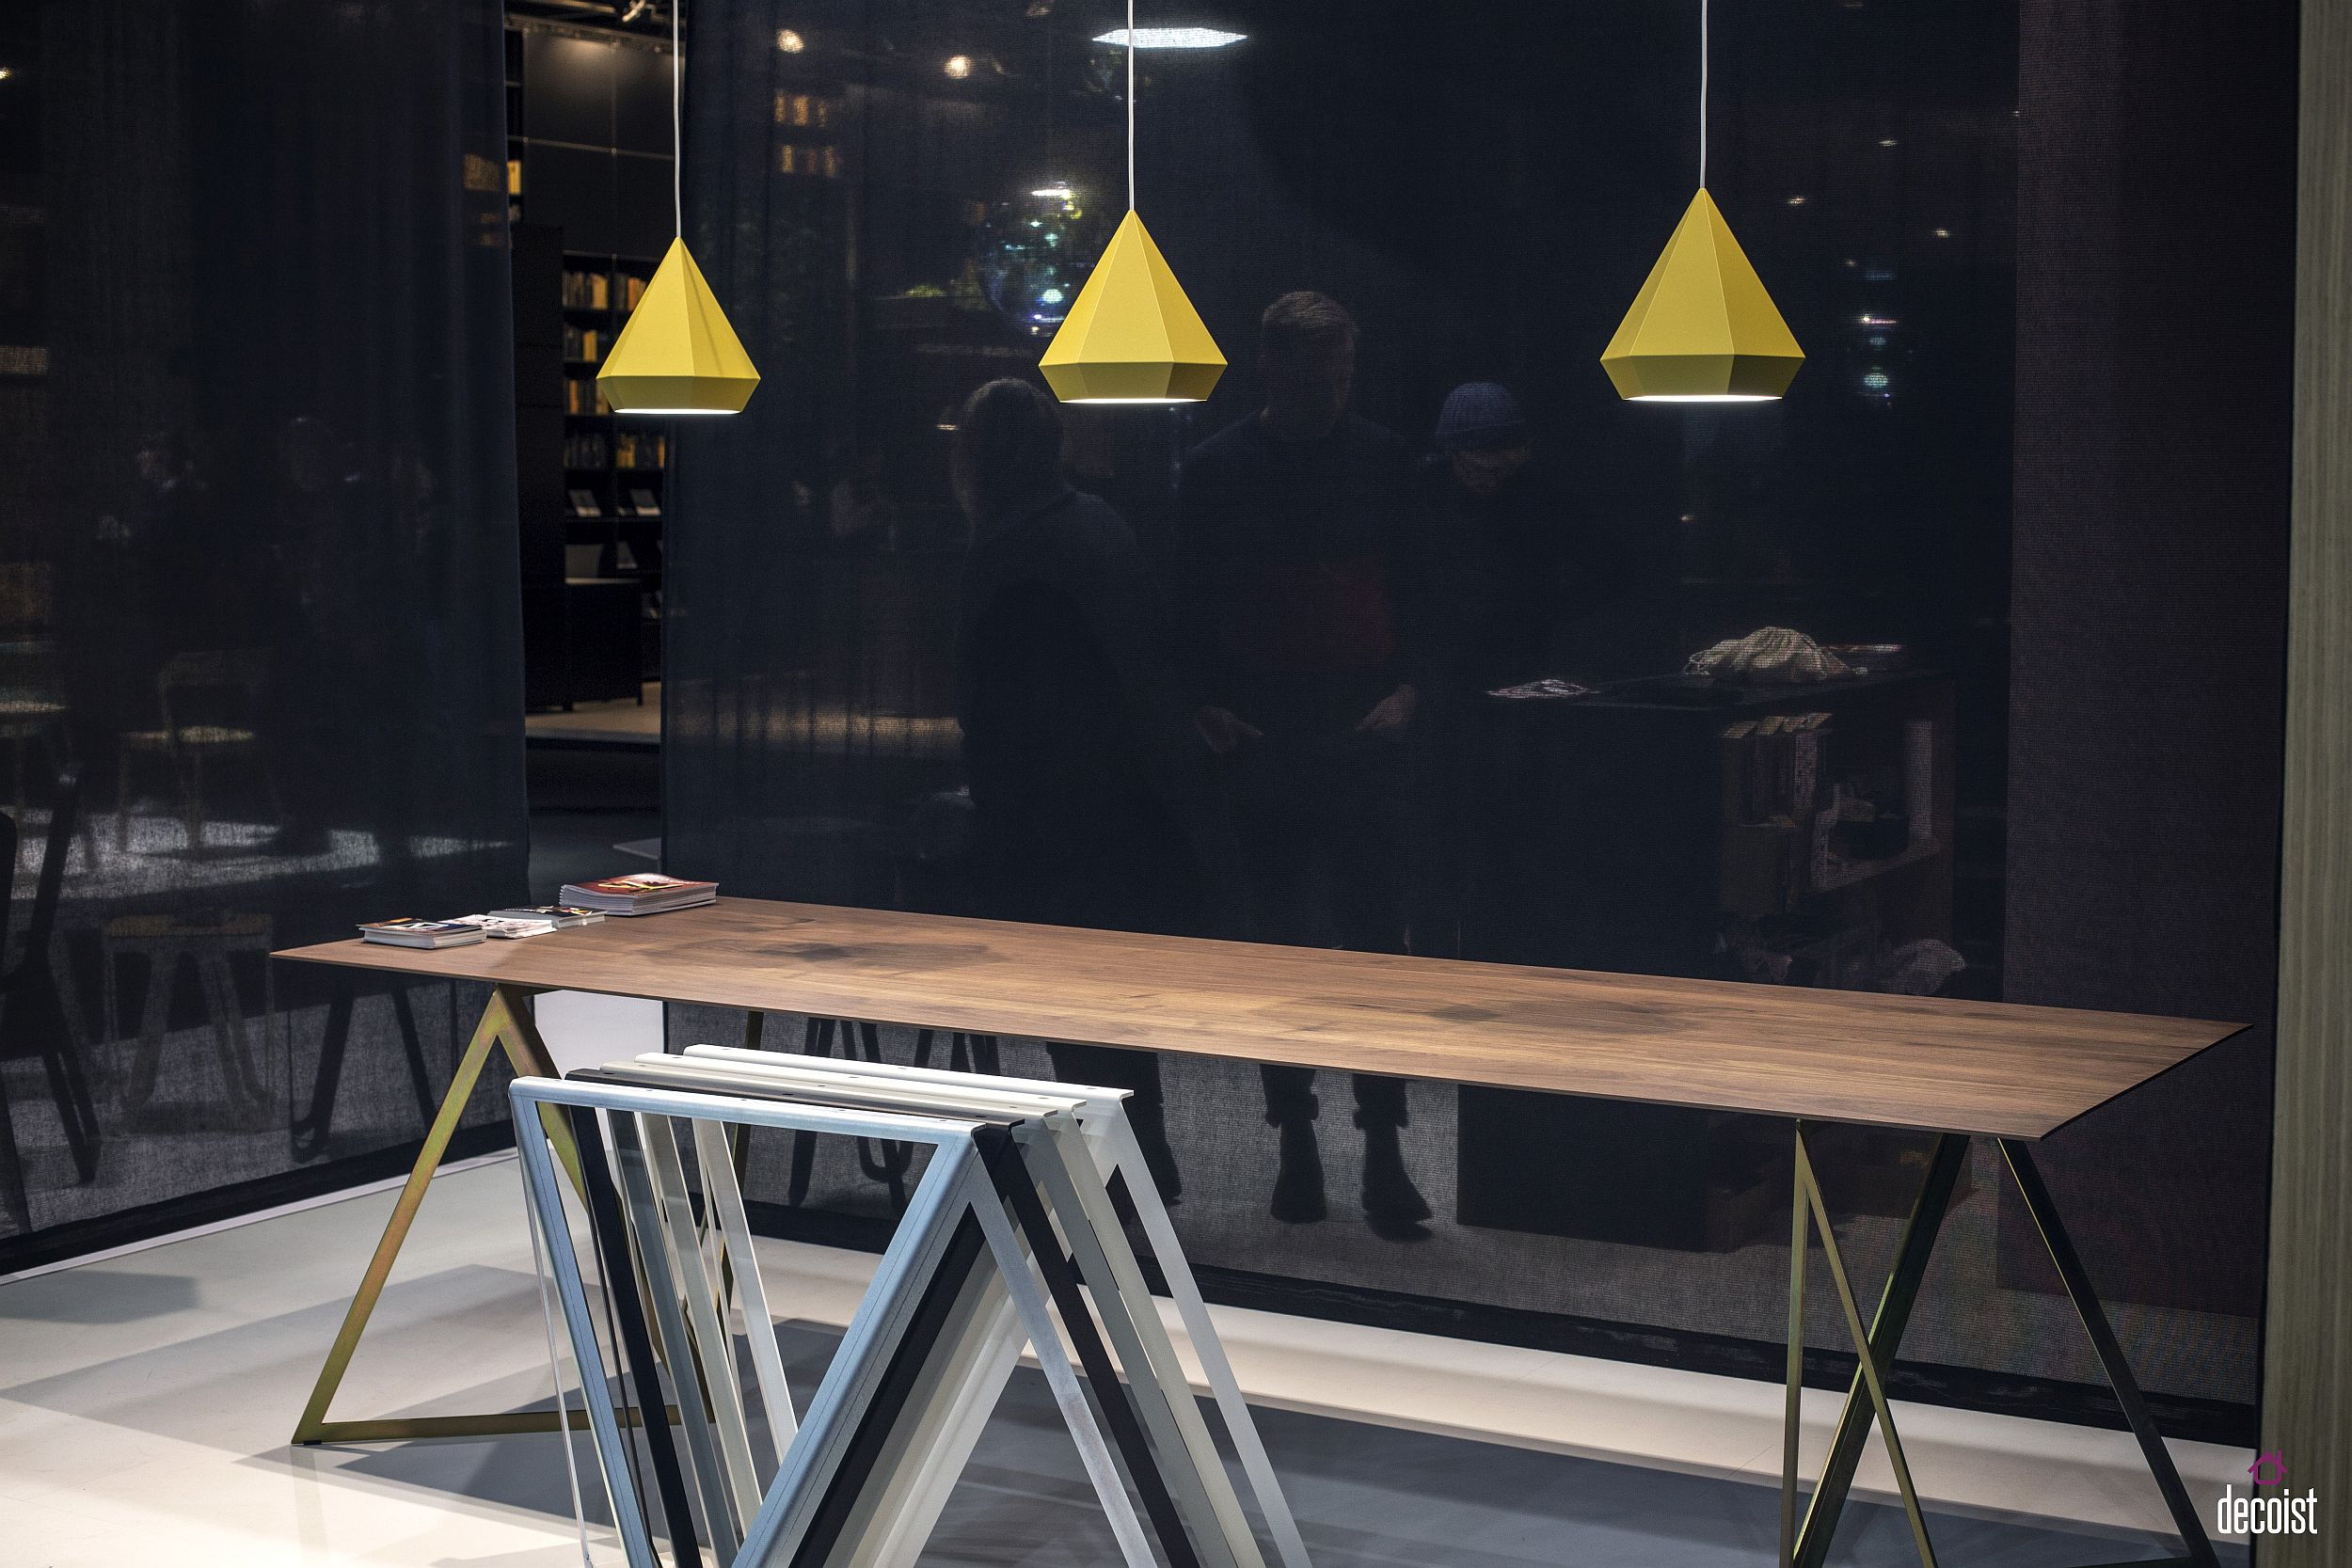 Small and beuatiful pendants combine crisp design and straight lines with a dash of yellow